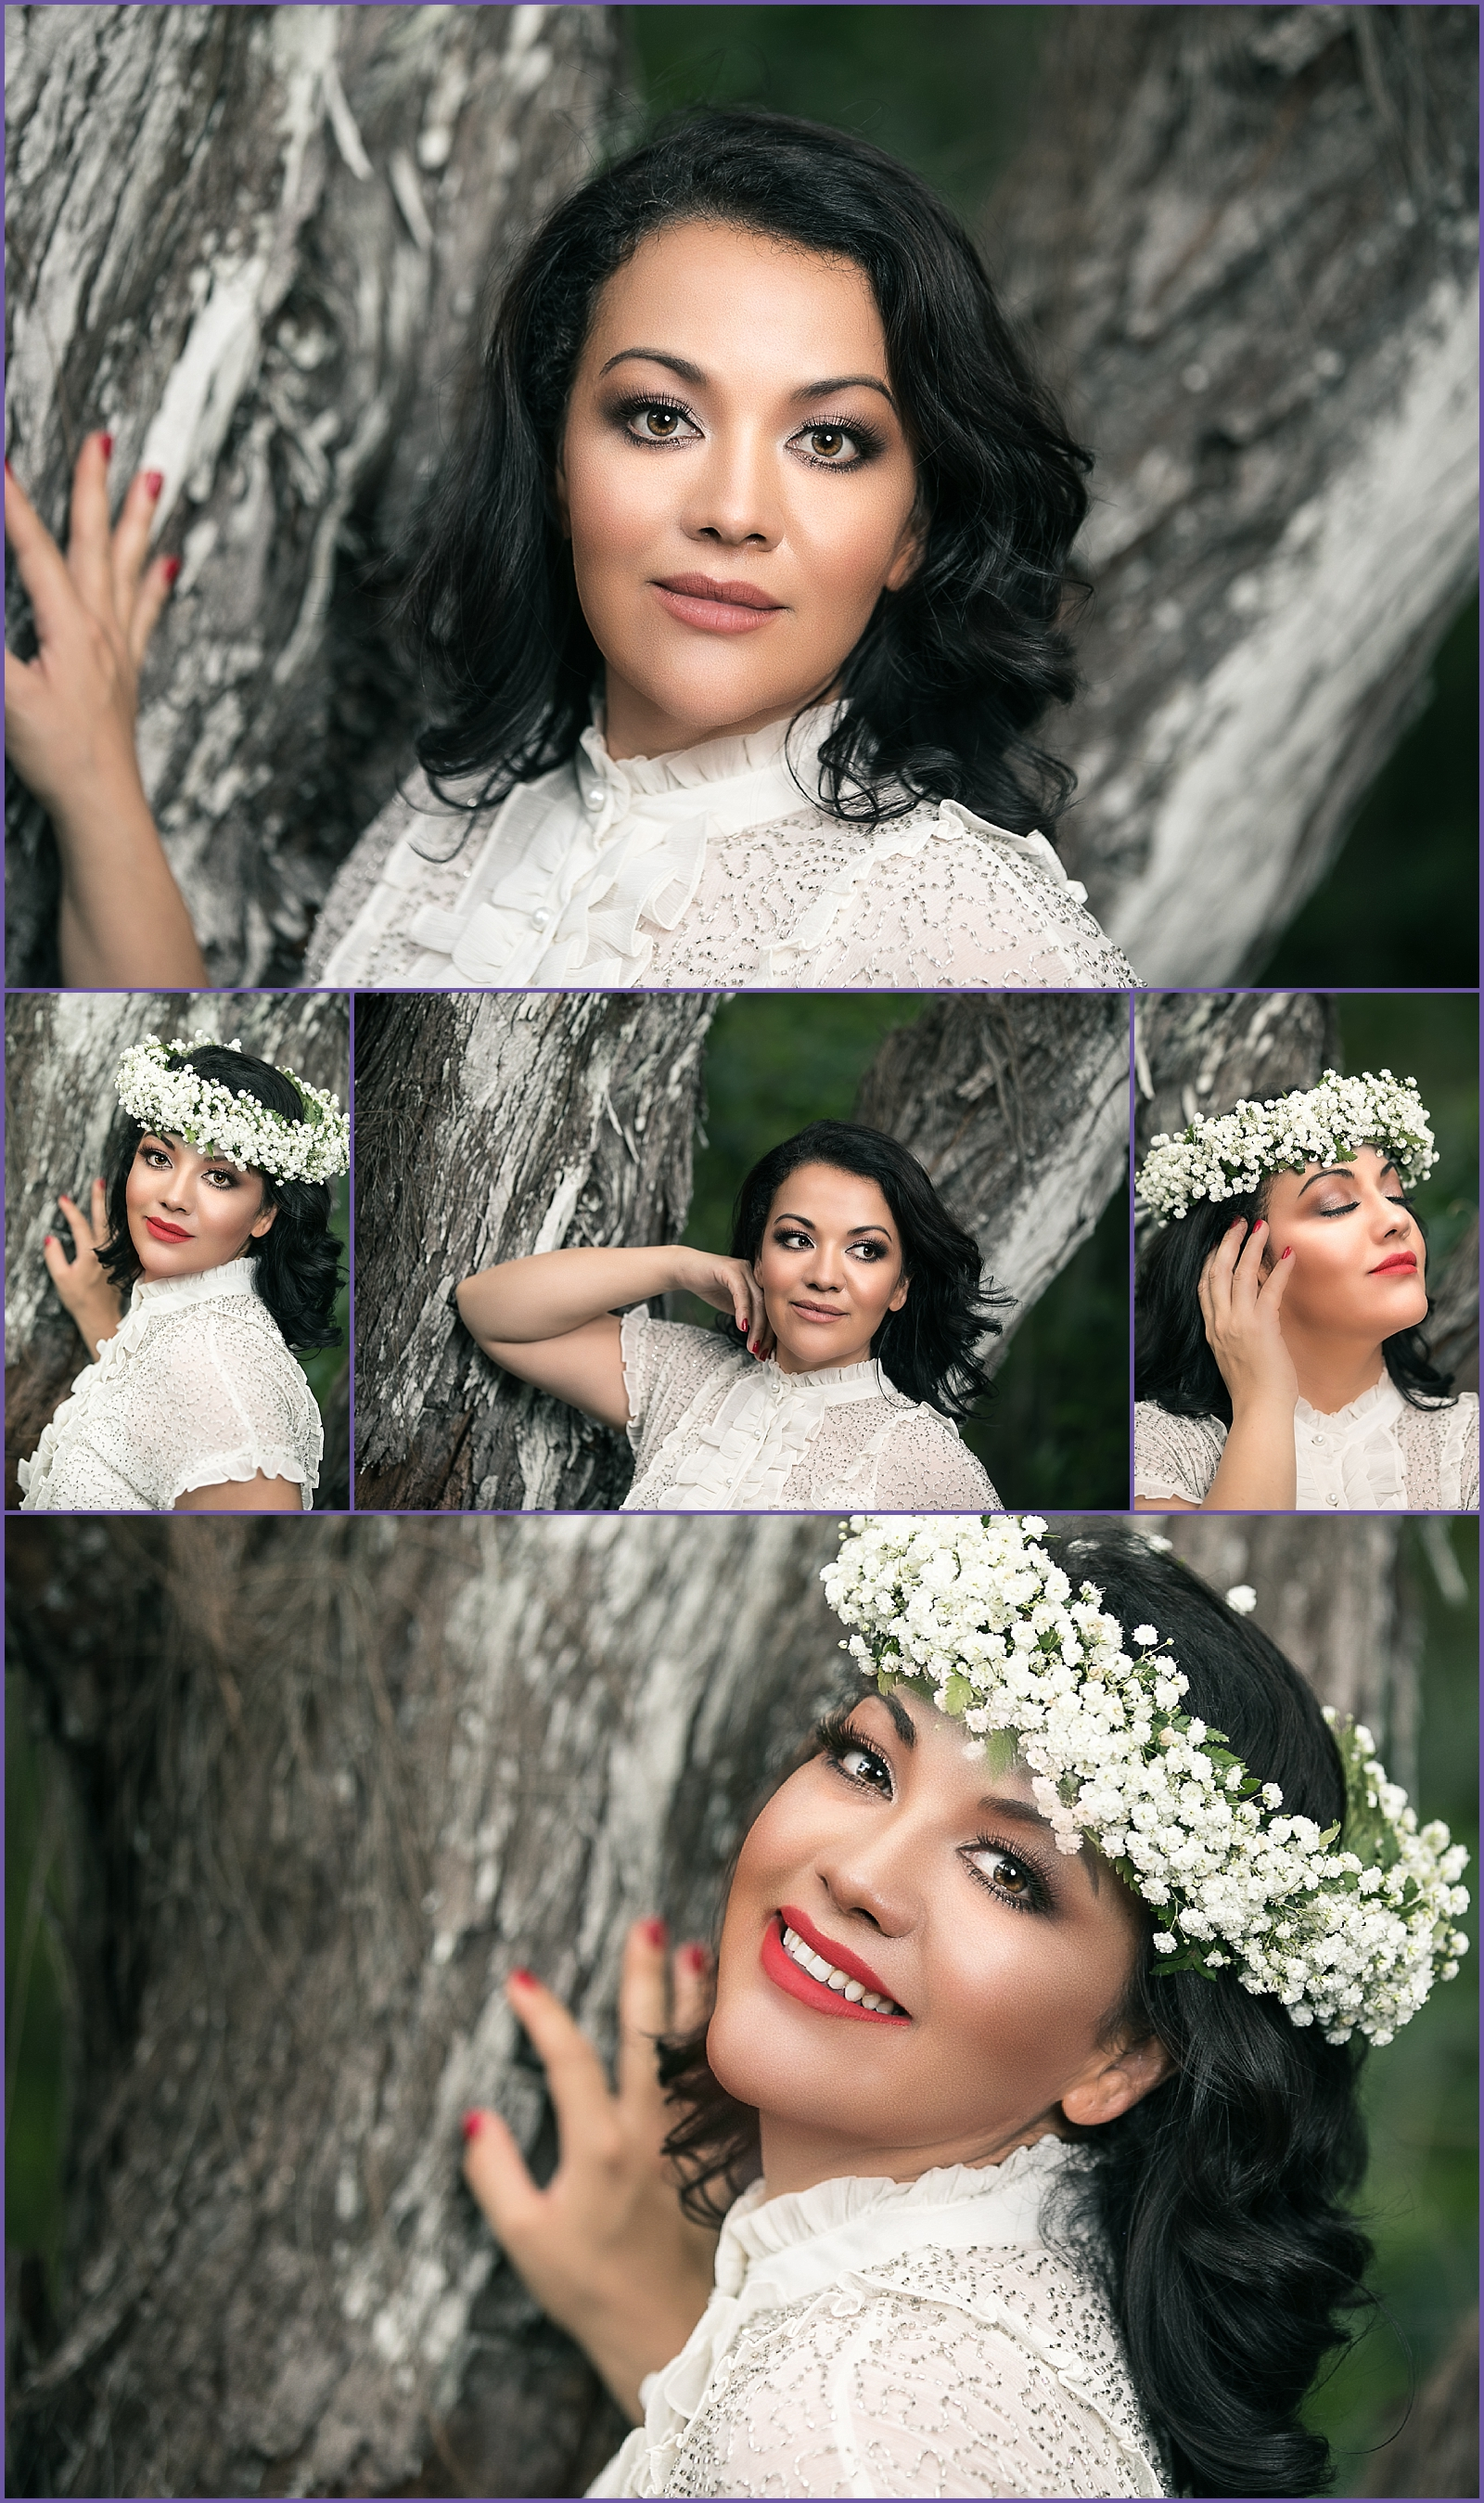 Before and after makeover - Hawaii glamour photographer - Honolulu beauty photographer - Sarai Espinoza mua